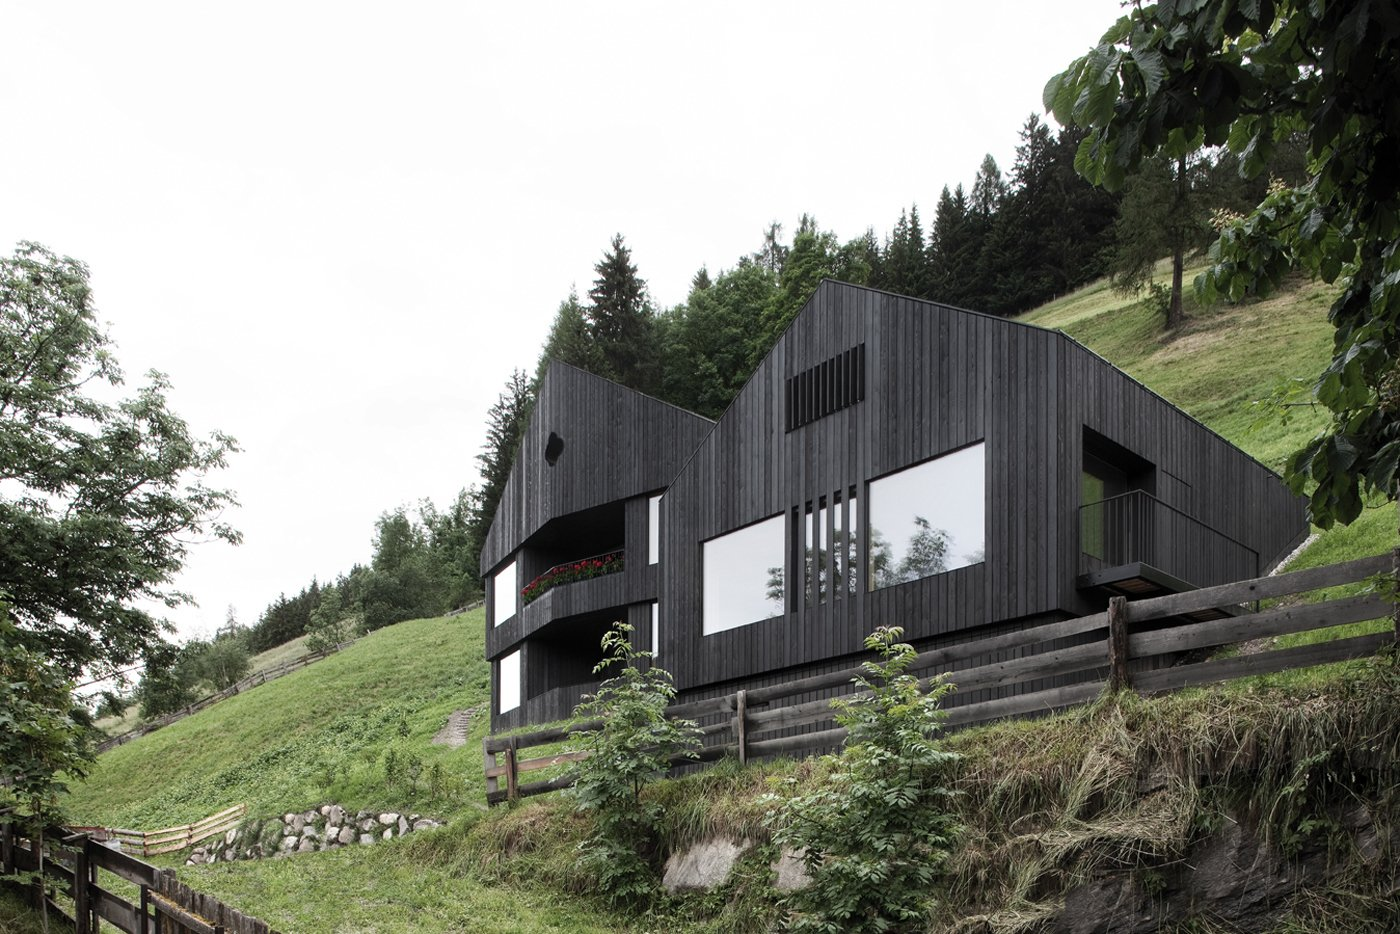 Photo 1 of 12 in Find Sanctuary in This Chalet in the Italian Alps from Architecture